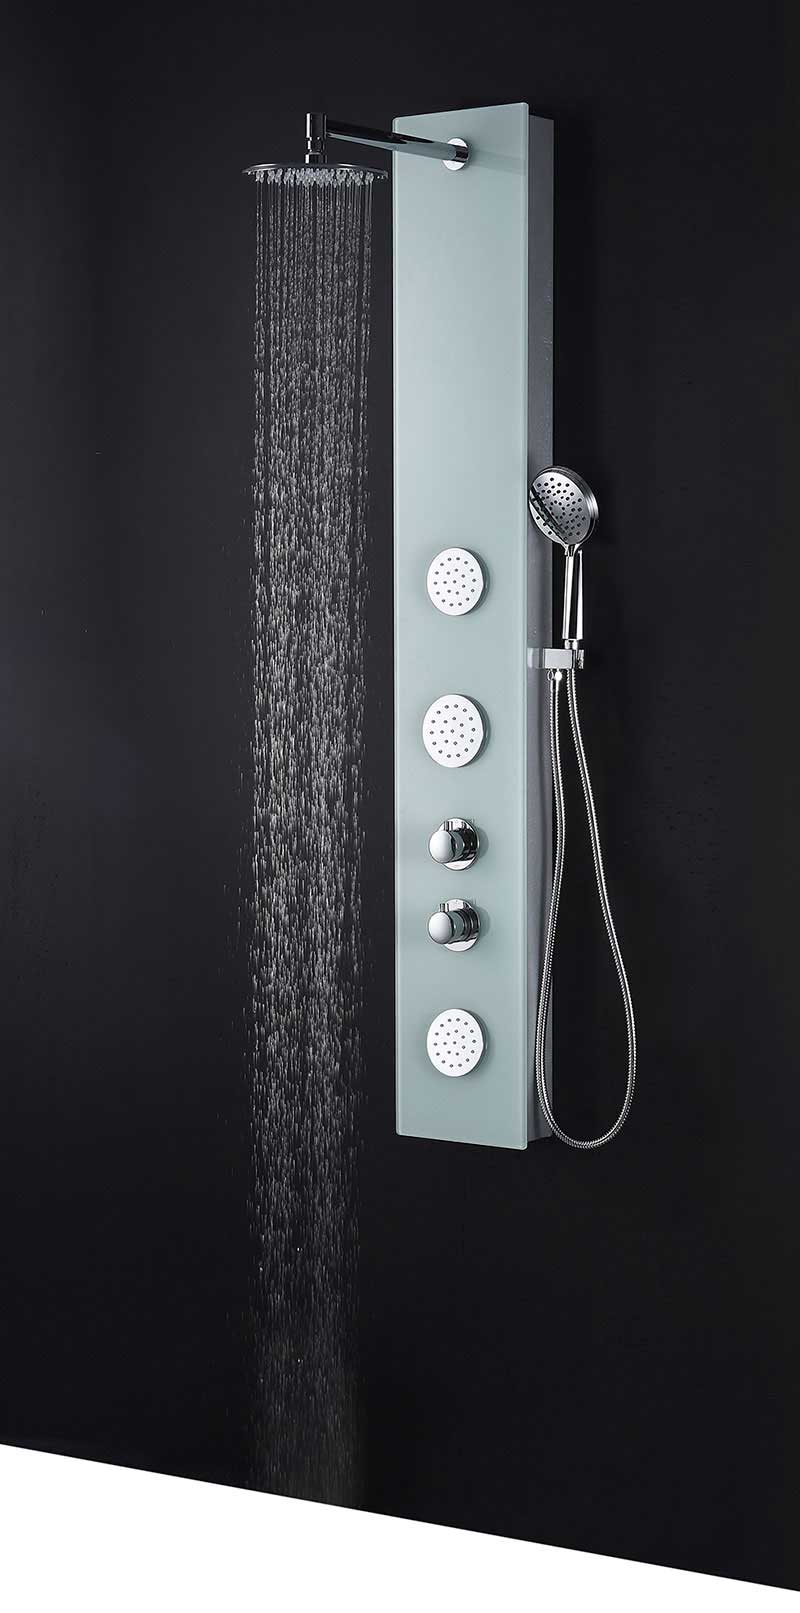 Anzzi MARE Series 60 in. Full Body Shower Panel System with Heavy Rain Shower and Spray Wand in White 6